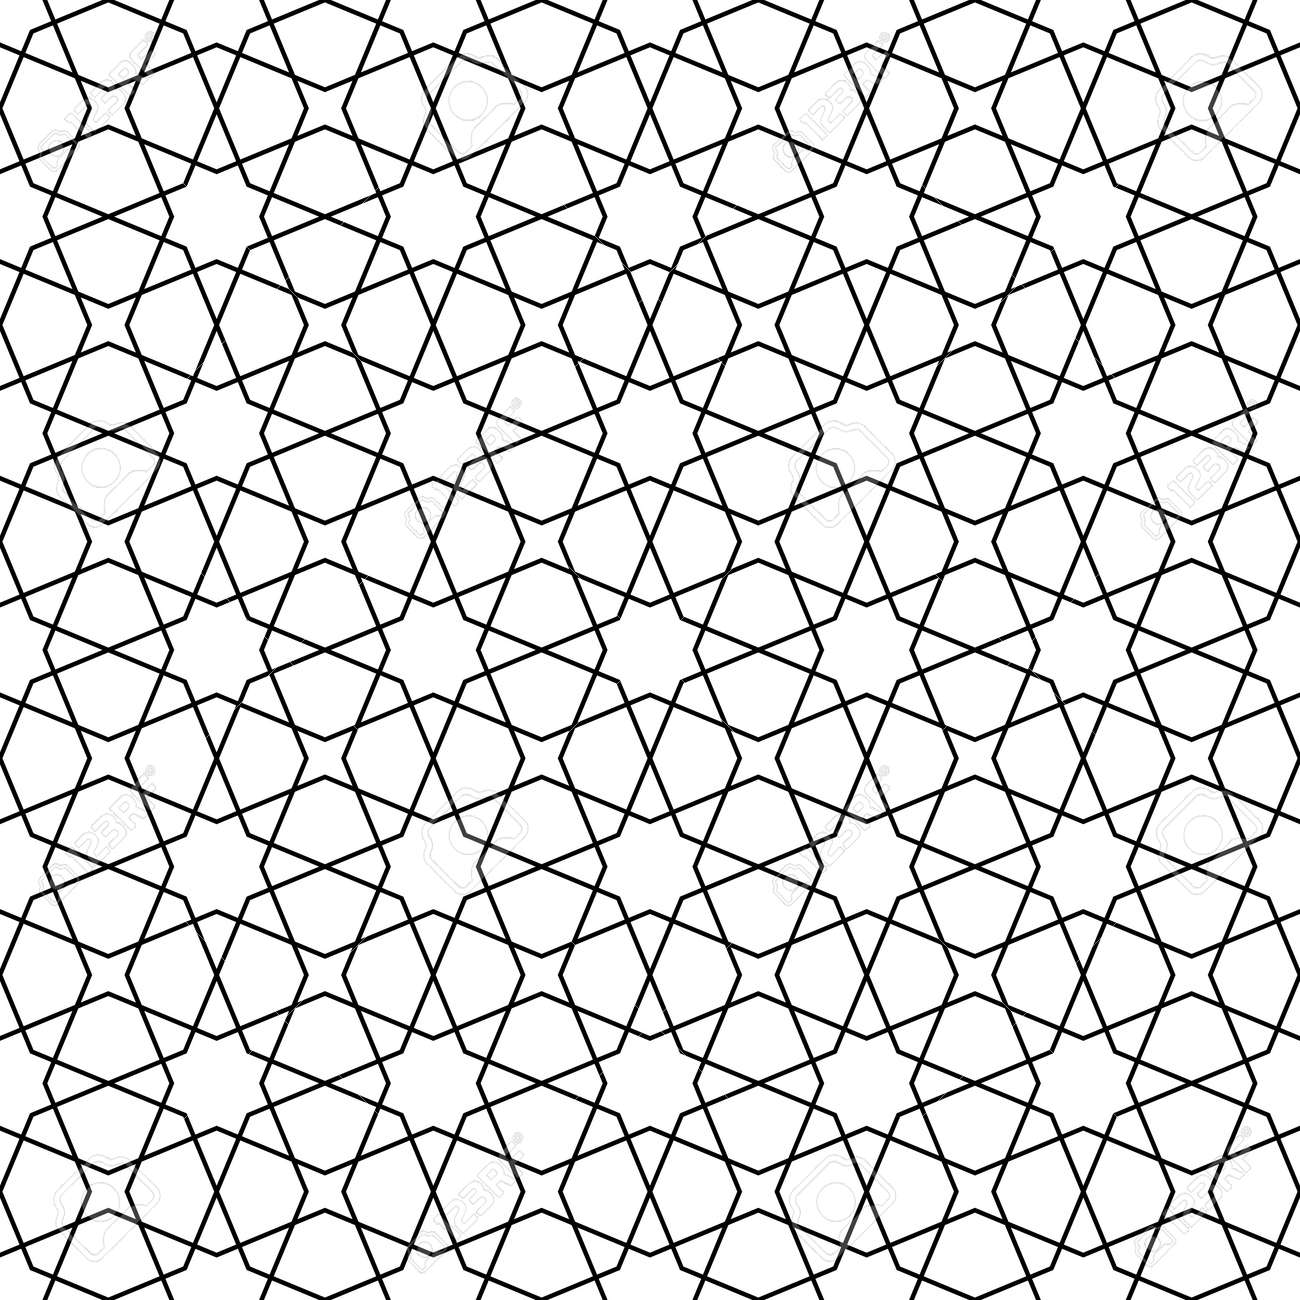 Seamless geometric ornament based on traditional arabic art. Muslim mosaic.Black and white lines.Great design for fabric,textile,cover,wrapping paper,background.Lines of average thickness. - 125416824